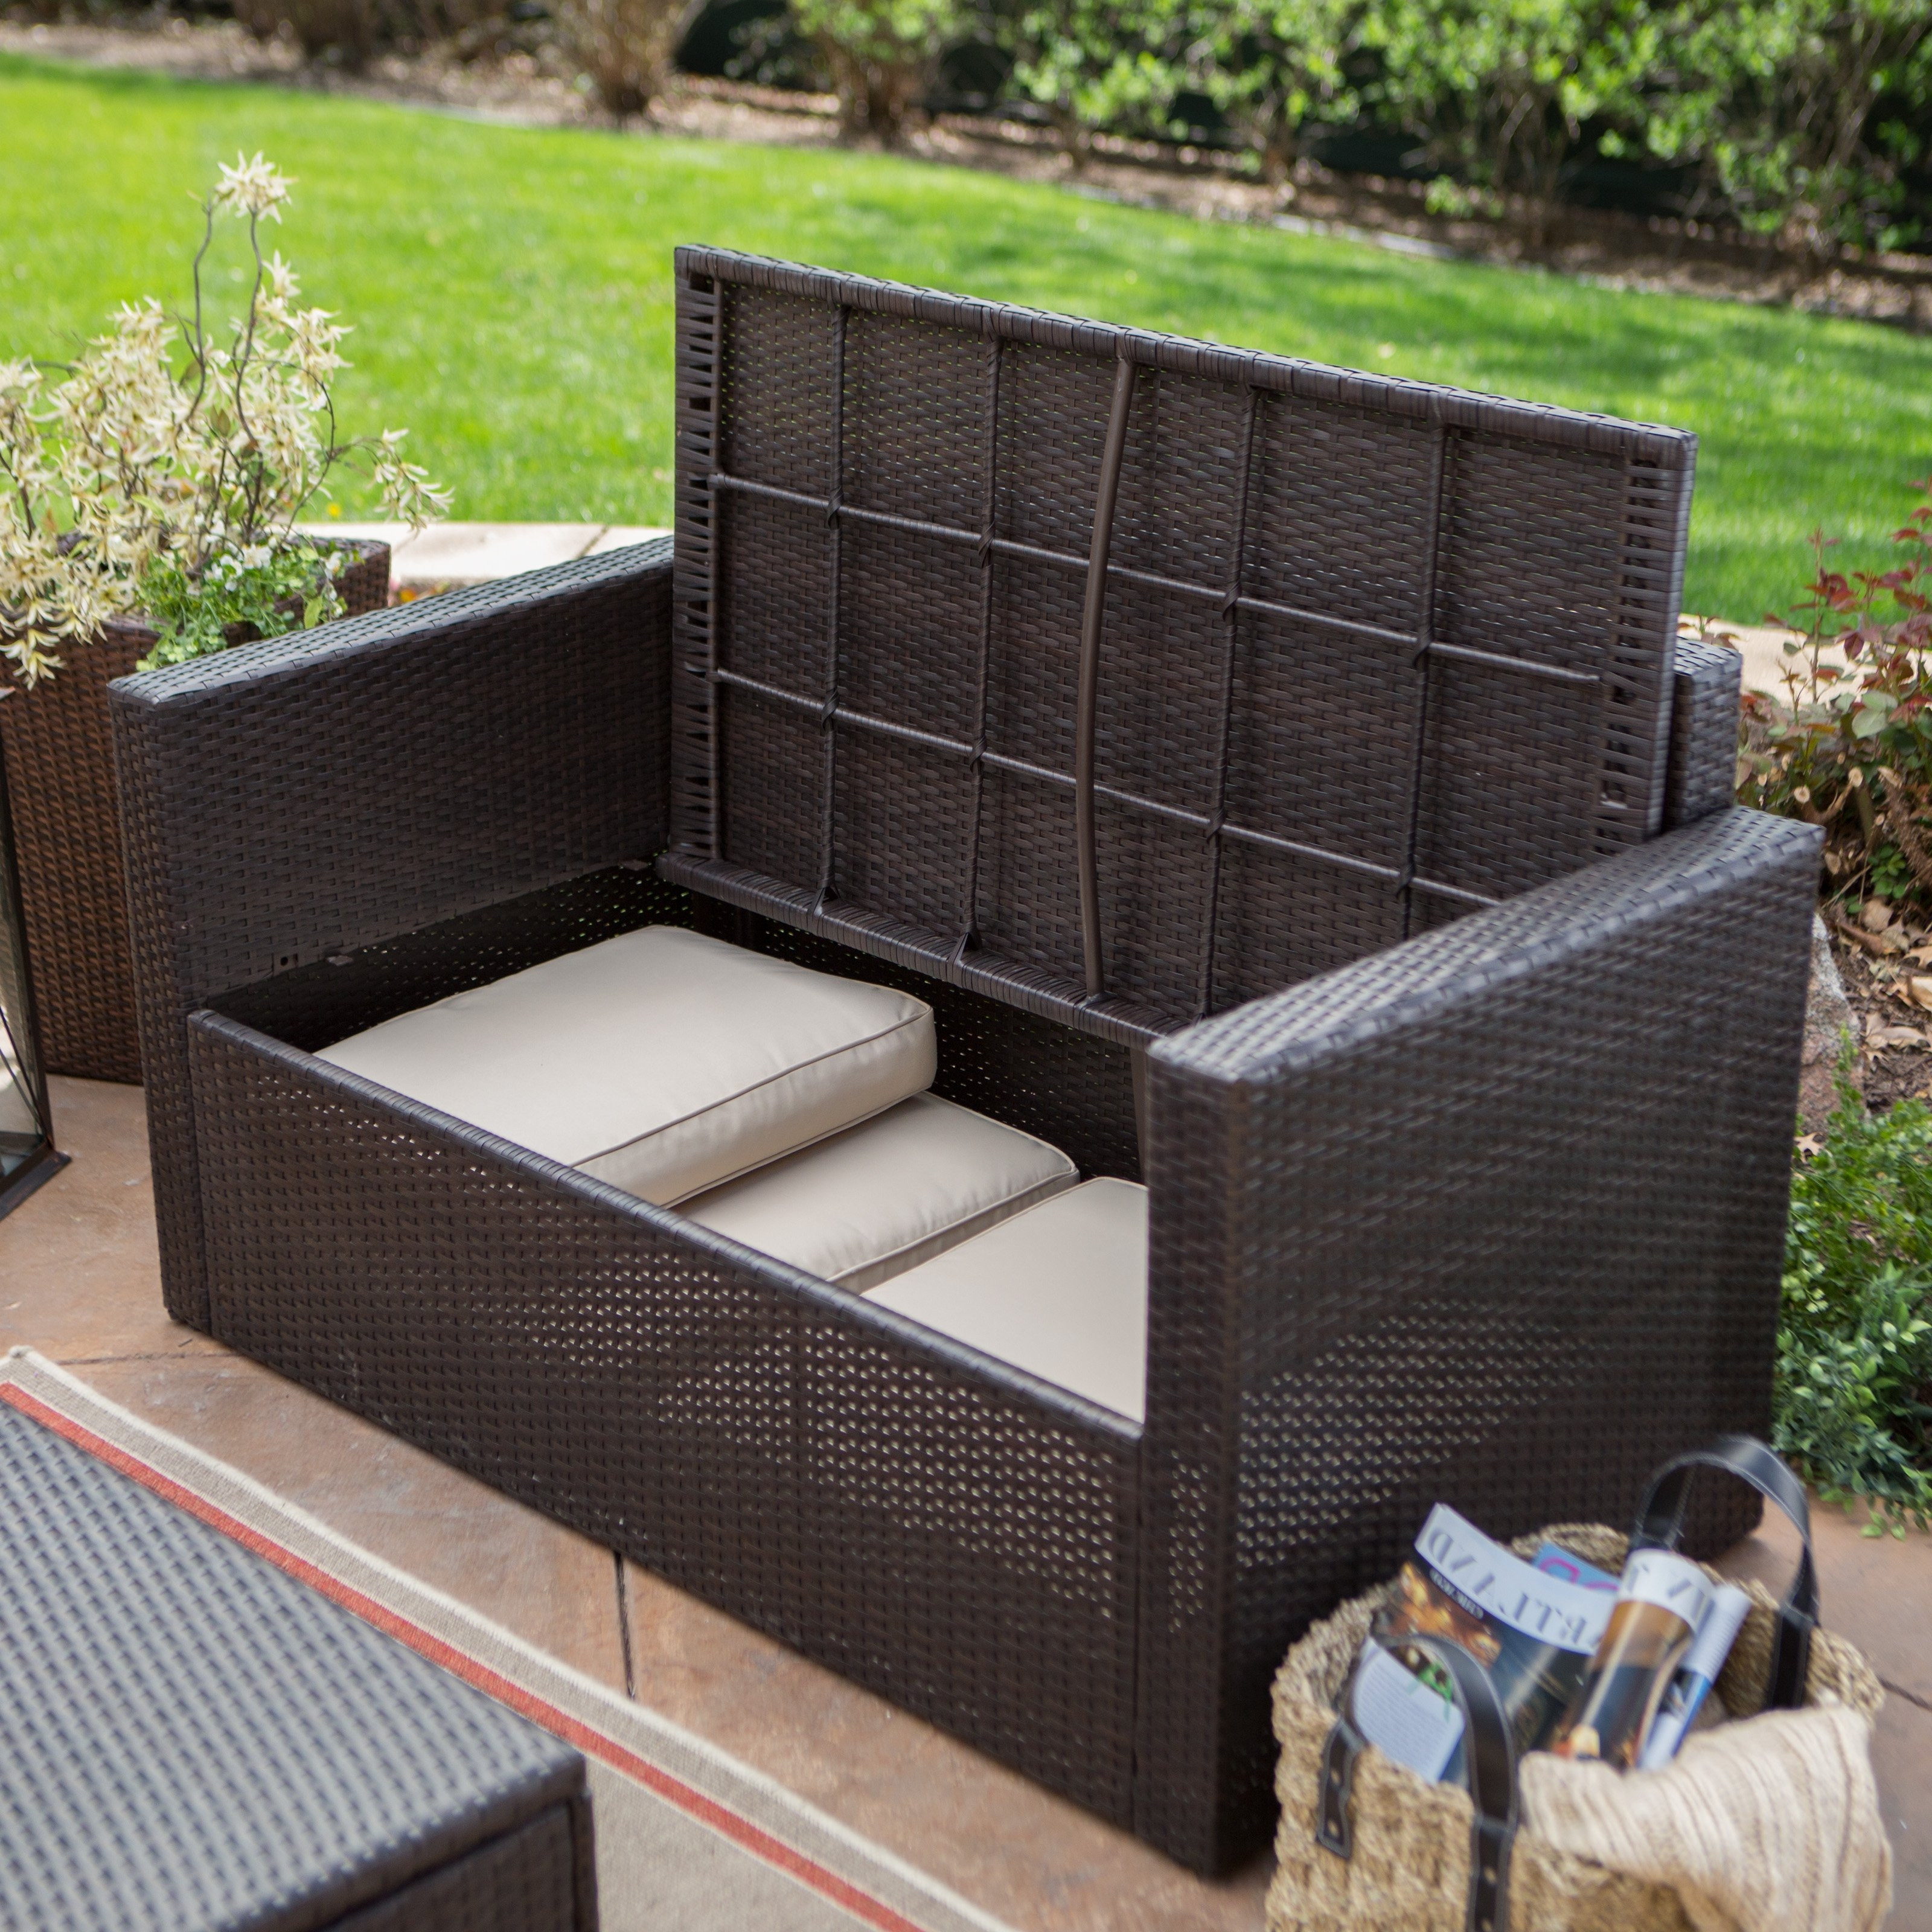 Patio Conversation Sets With Storage For Well Liked Coral Coast Berea Outdoor Wicker Storage Loveseat With Cushions (View 3 of 20)